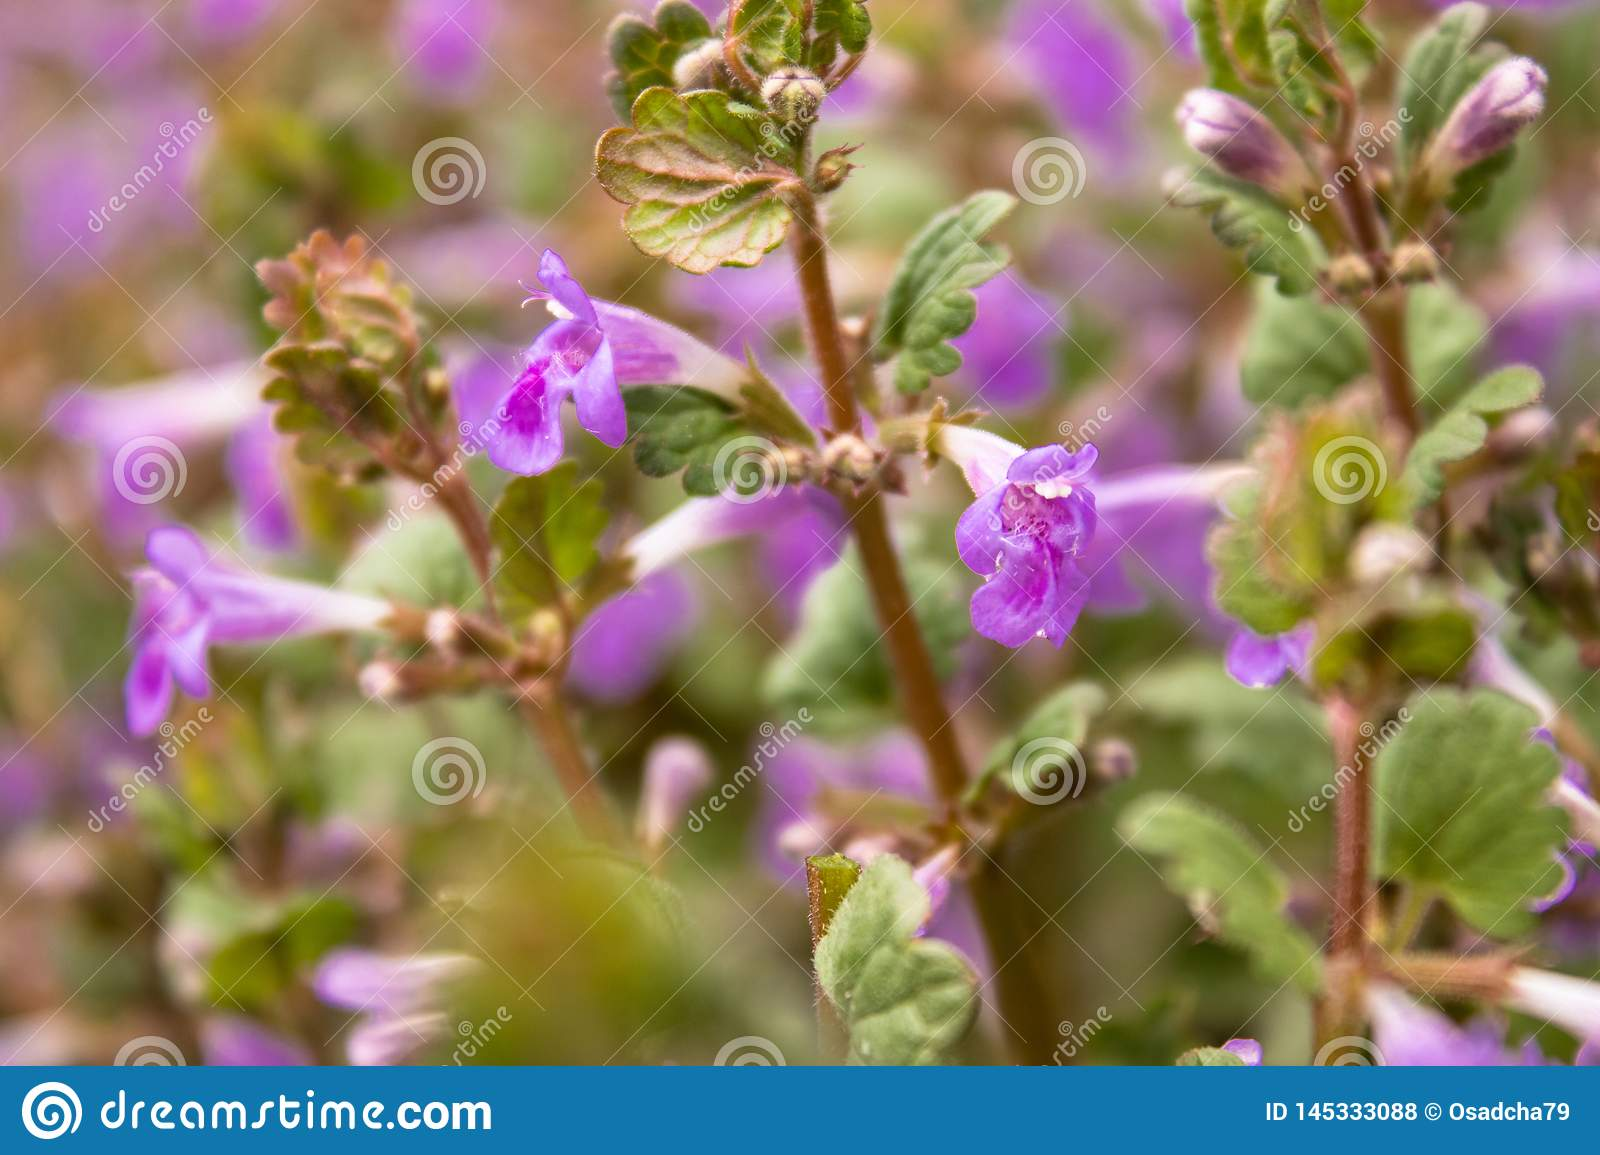 Purple Flowers On A Background Of Green Leaves Tiny Pink Flowers